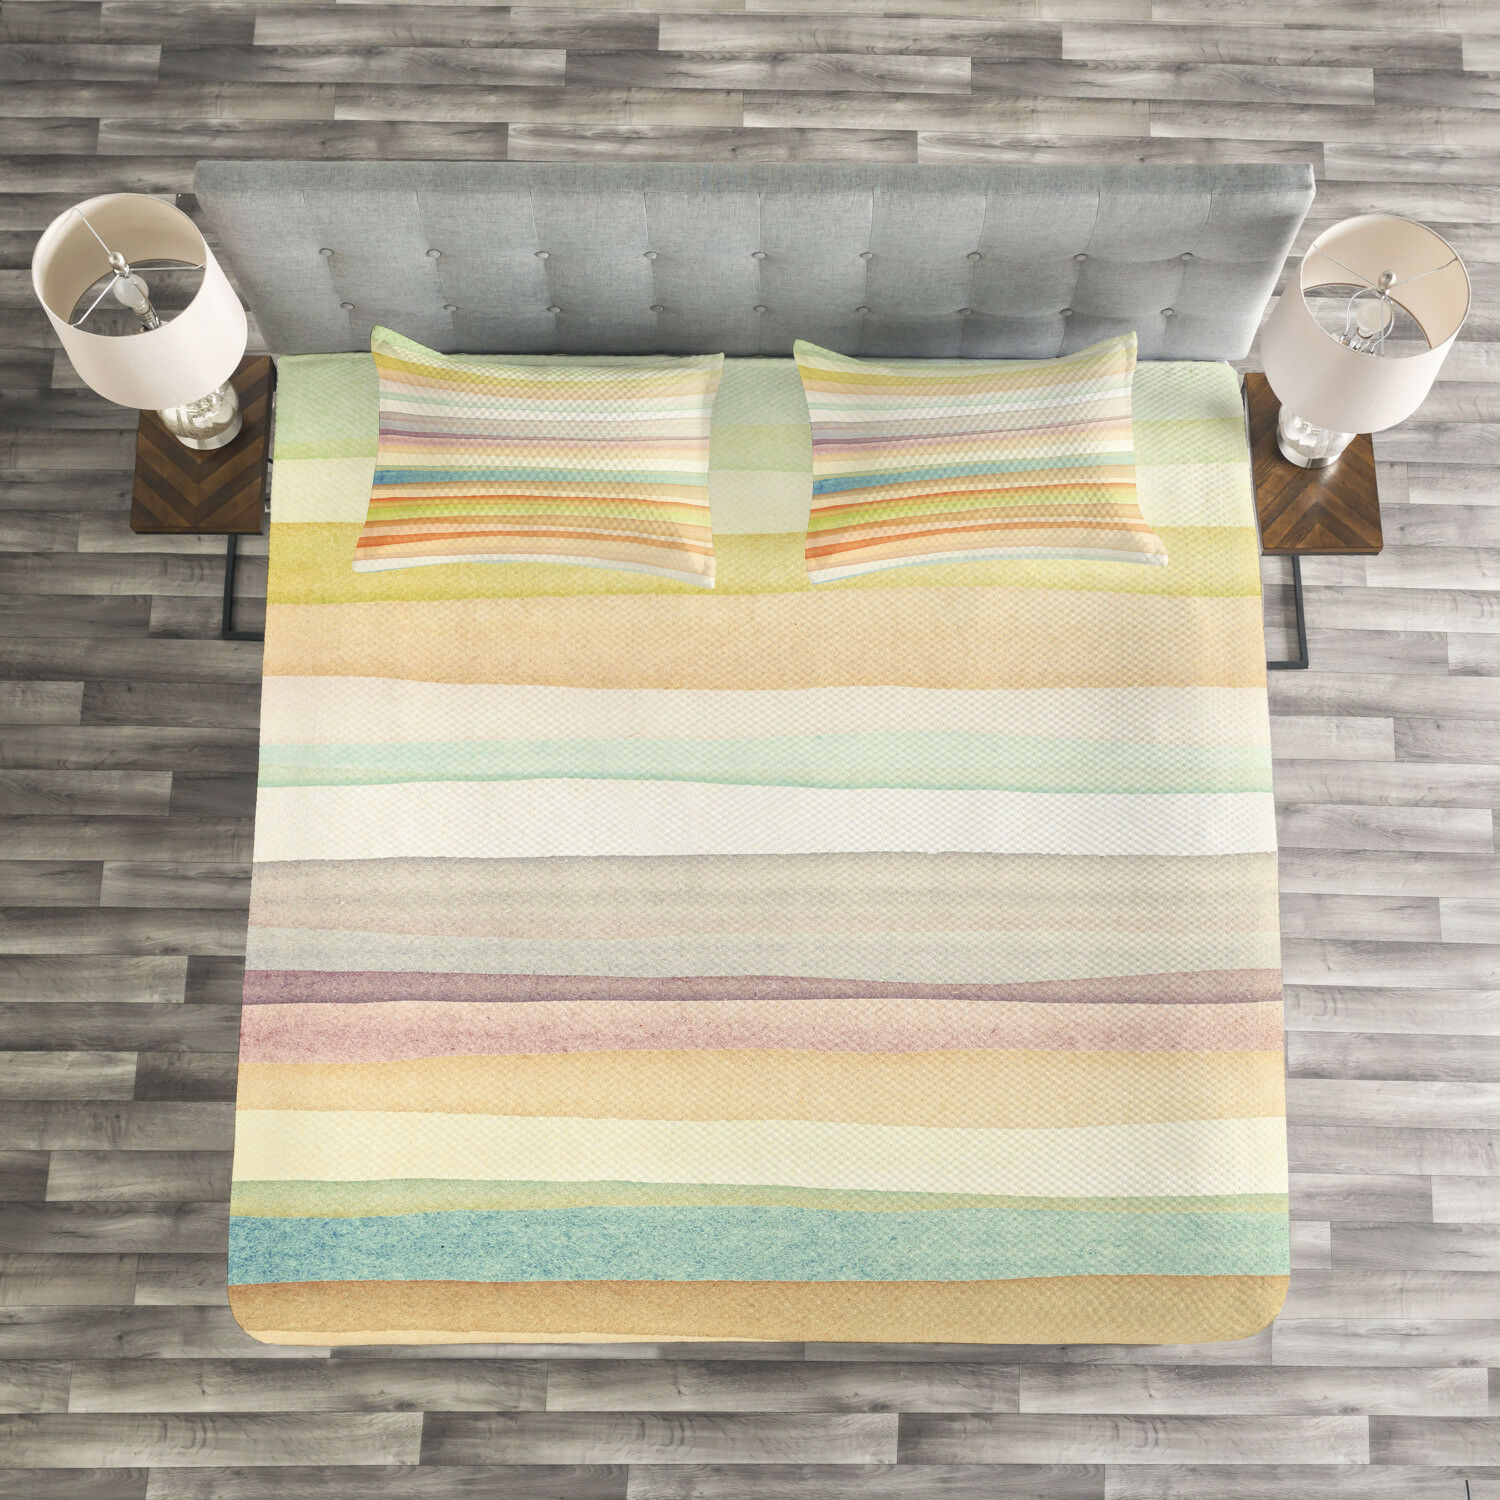 Pastel Quilted Bedspread & Pillow Shams Set, Stripes WaterFarbe Art Print